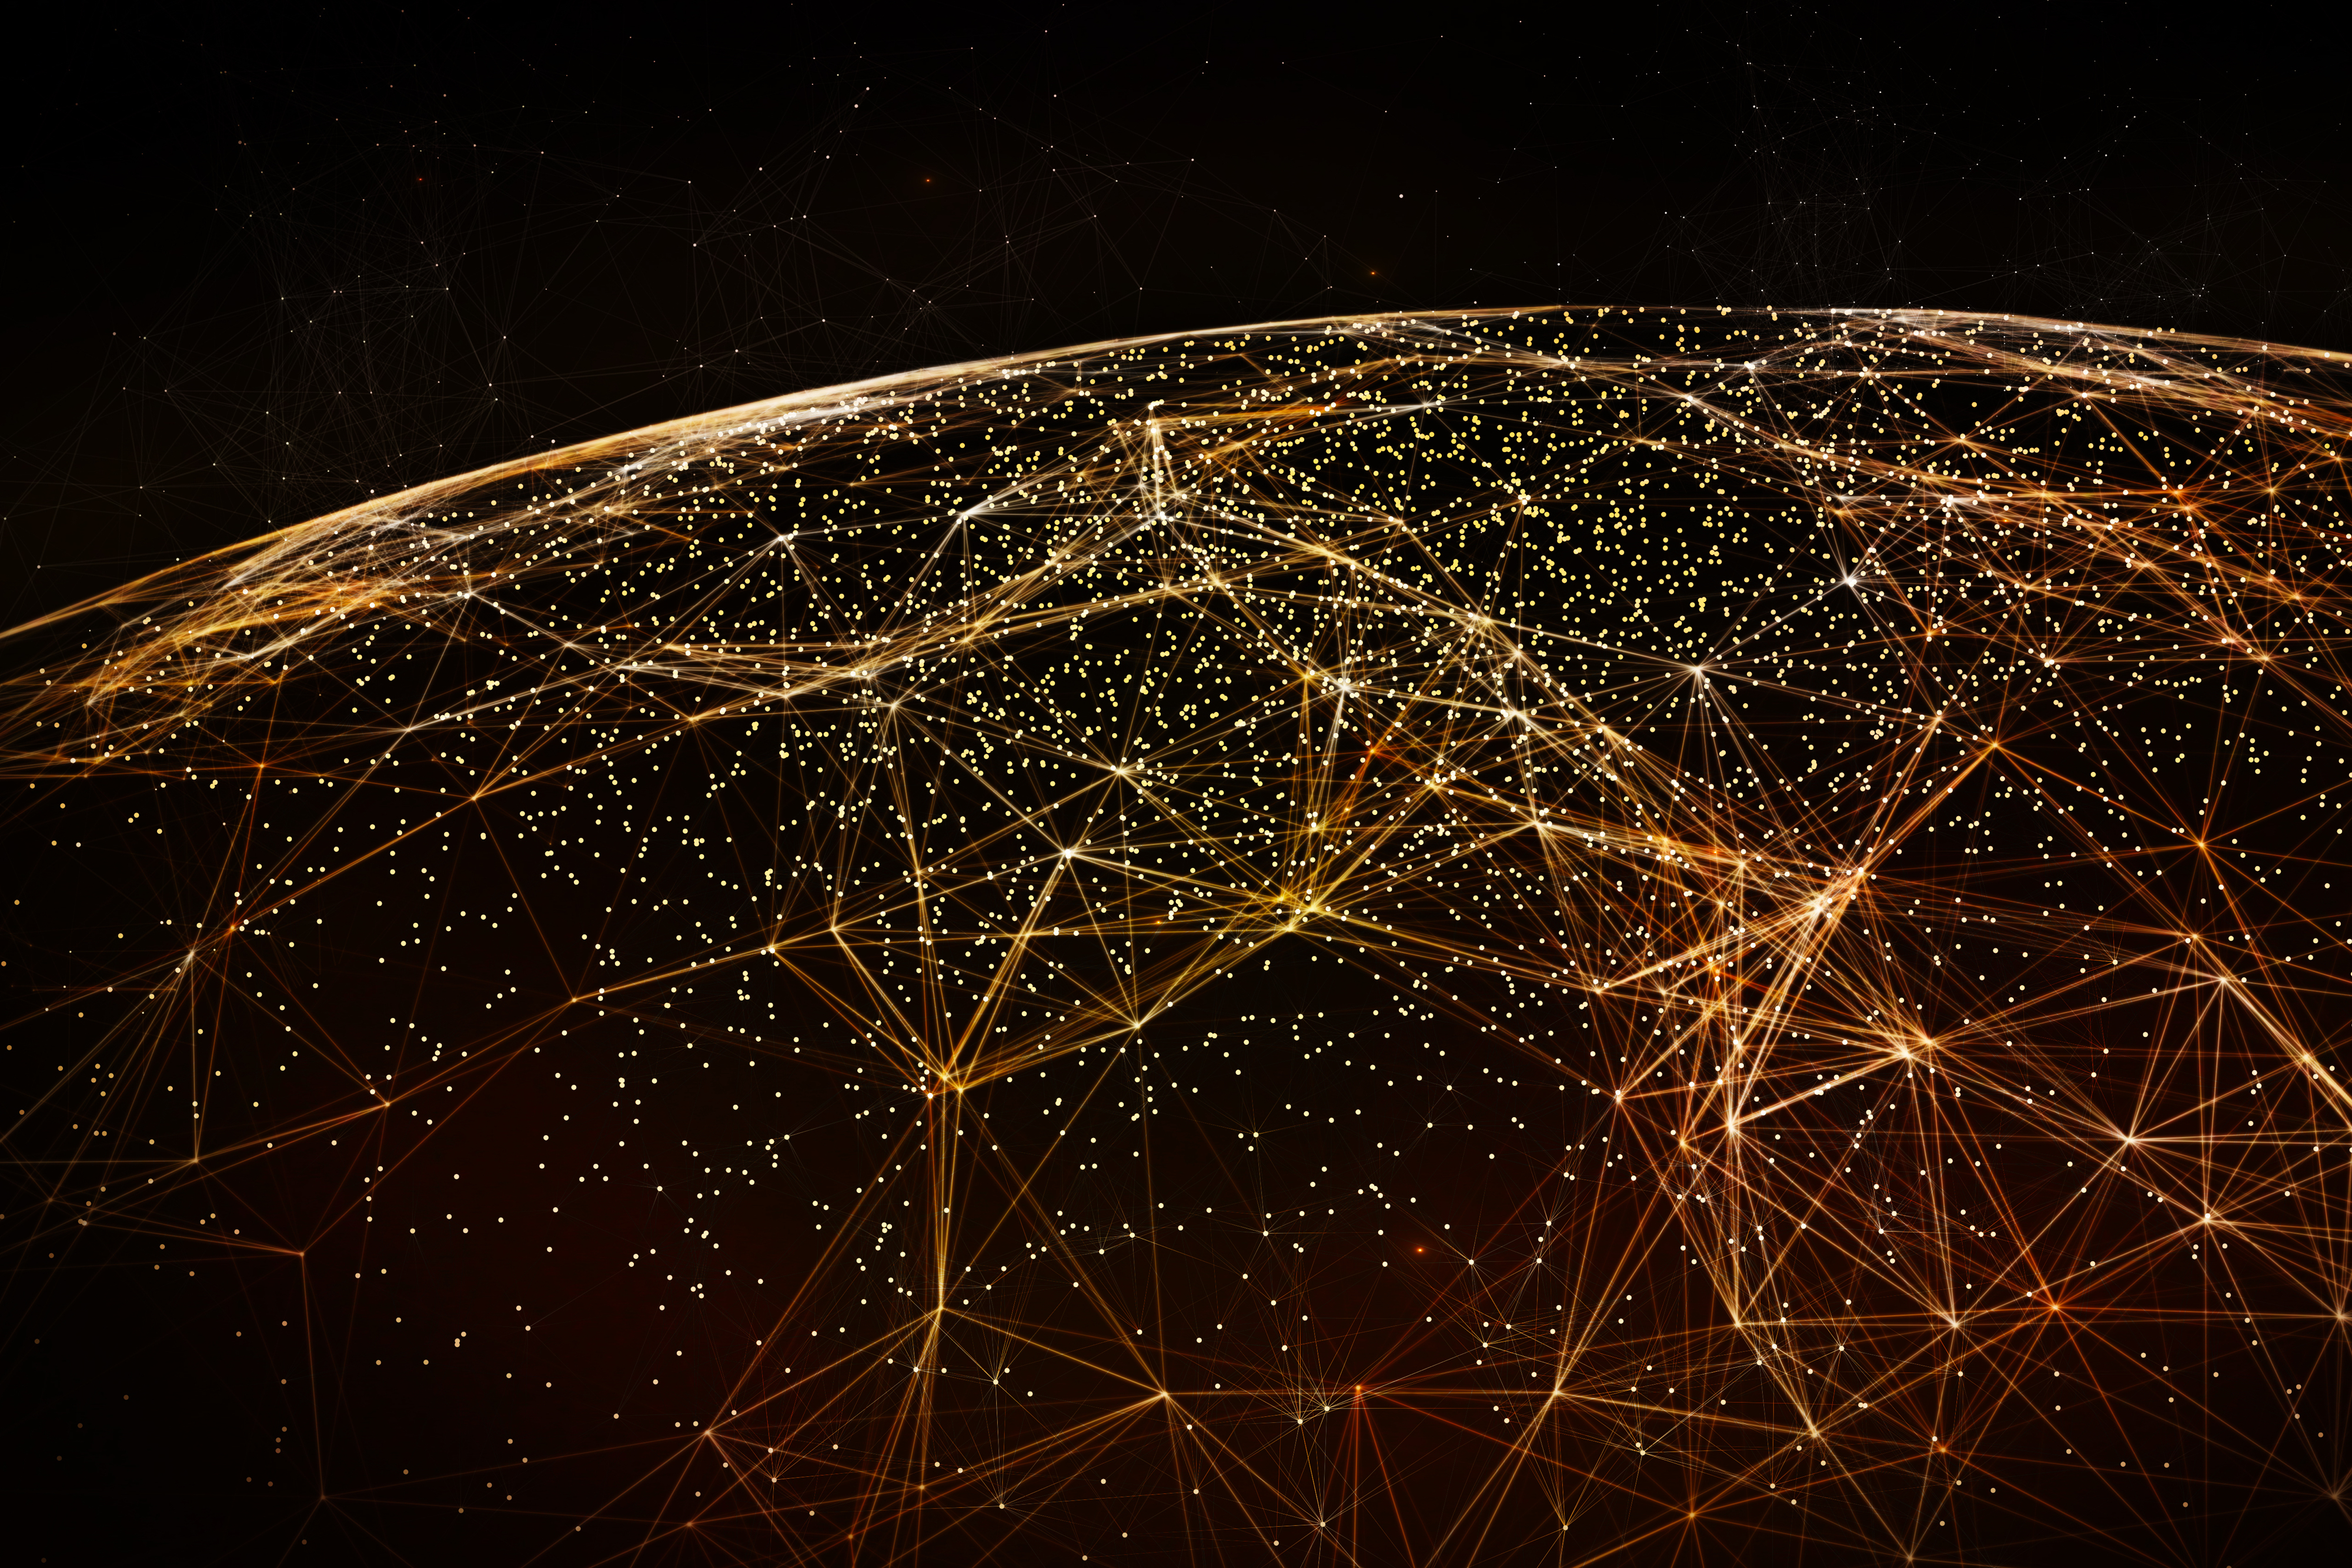 techcrunch.com - Zack Whittaker - Cloudflare wants internet route leaks to be a thing of the past